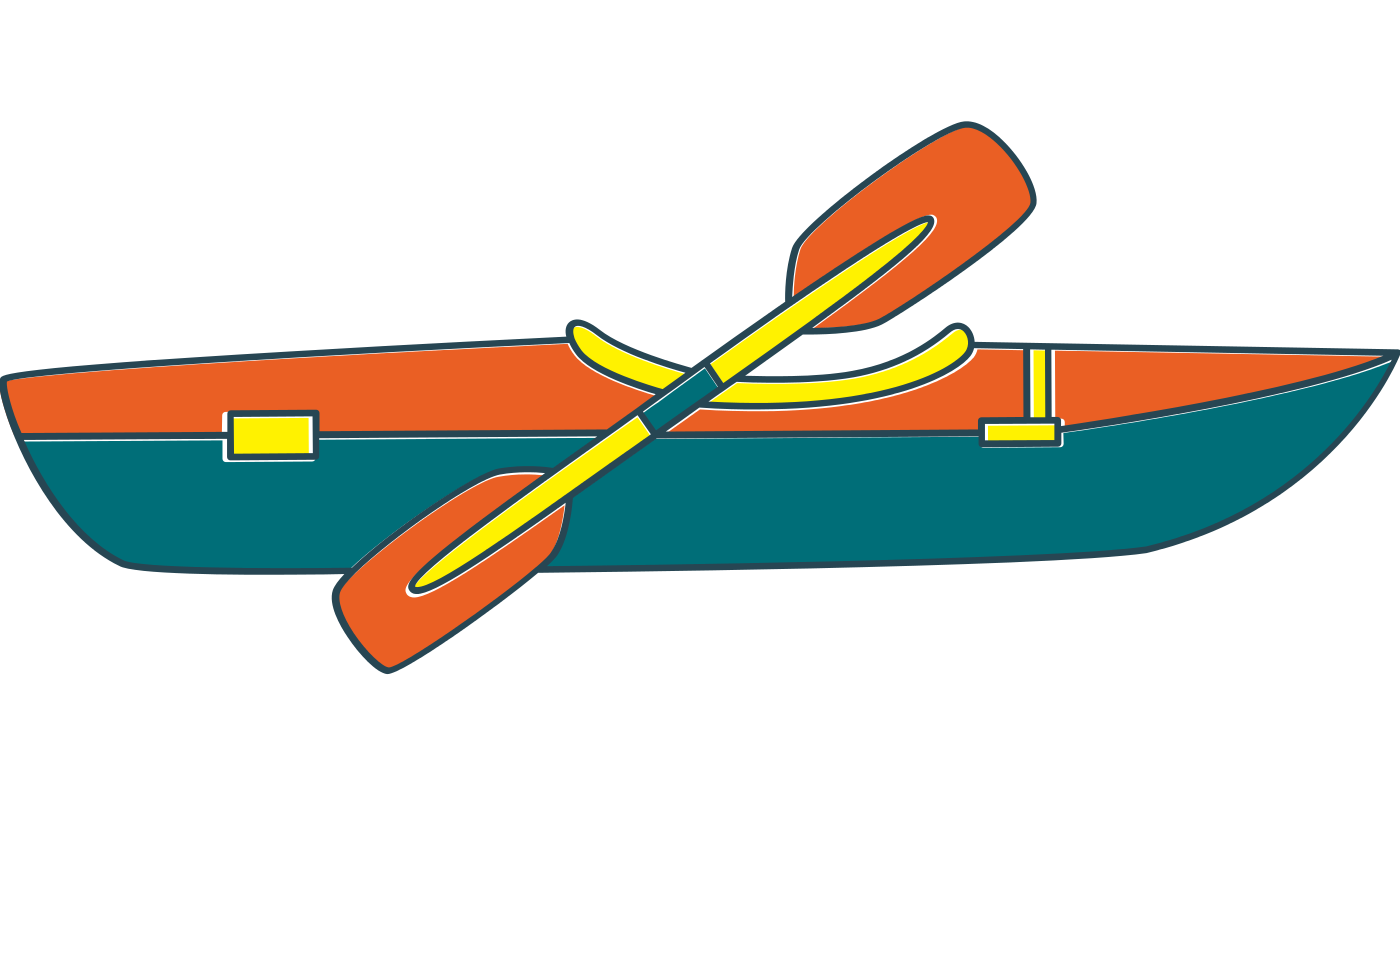 Watersports clipart clipart royalty free stock Kayak clipart watersports, Kayak watersports Transparent ... clipart royalty free stock